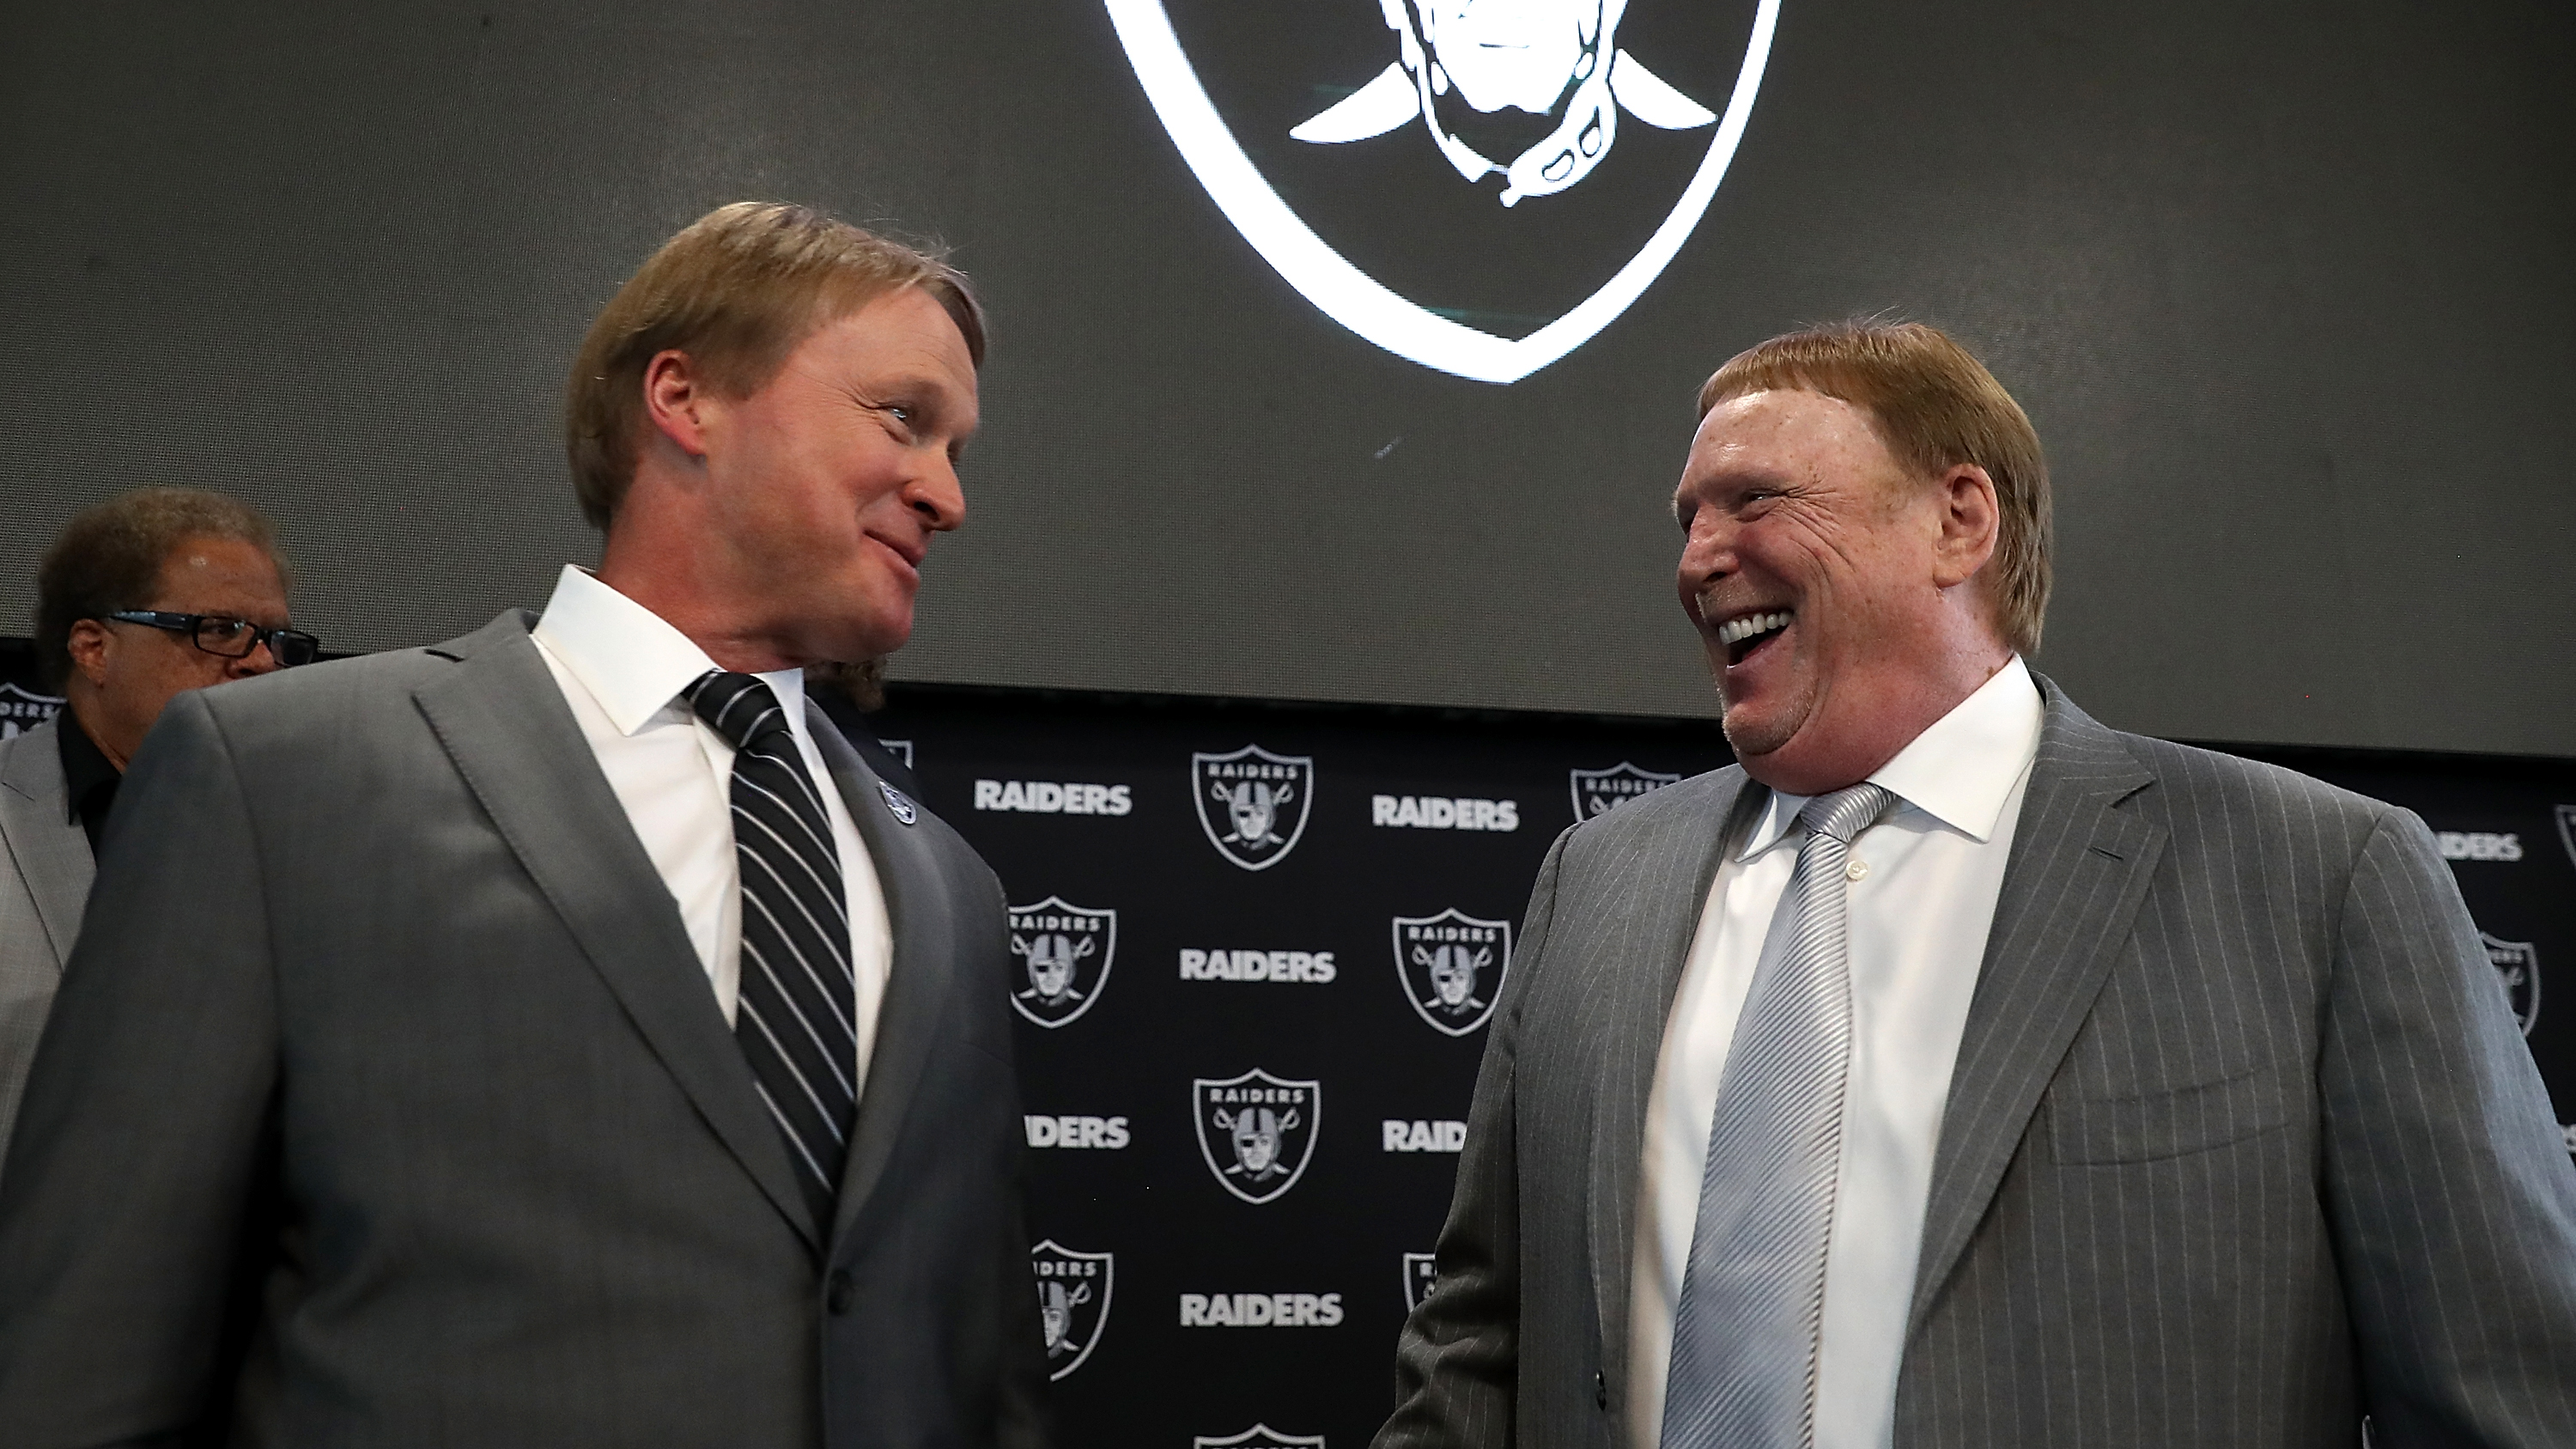 Jon-gruden-raiders-rooney-rule